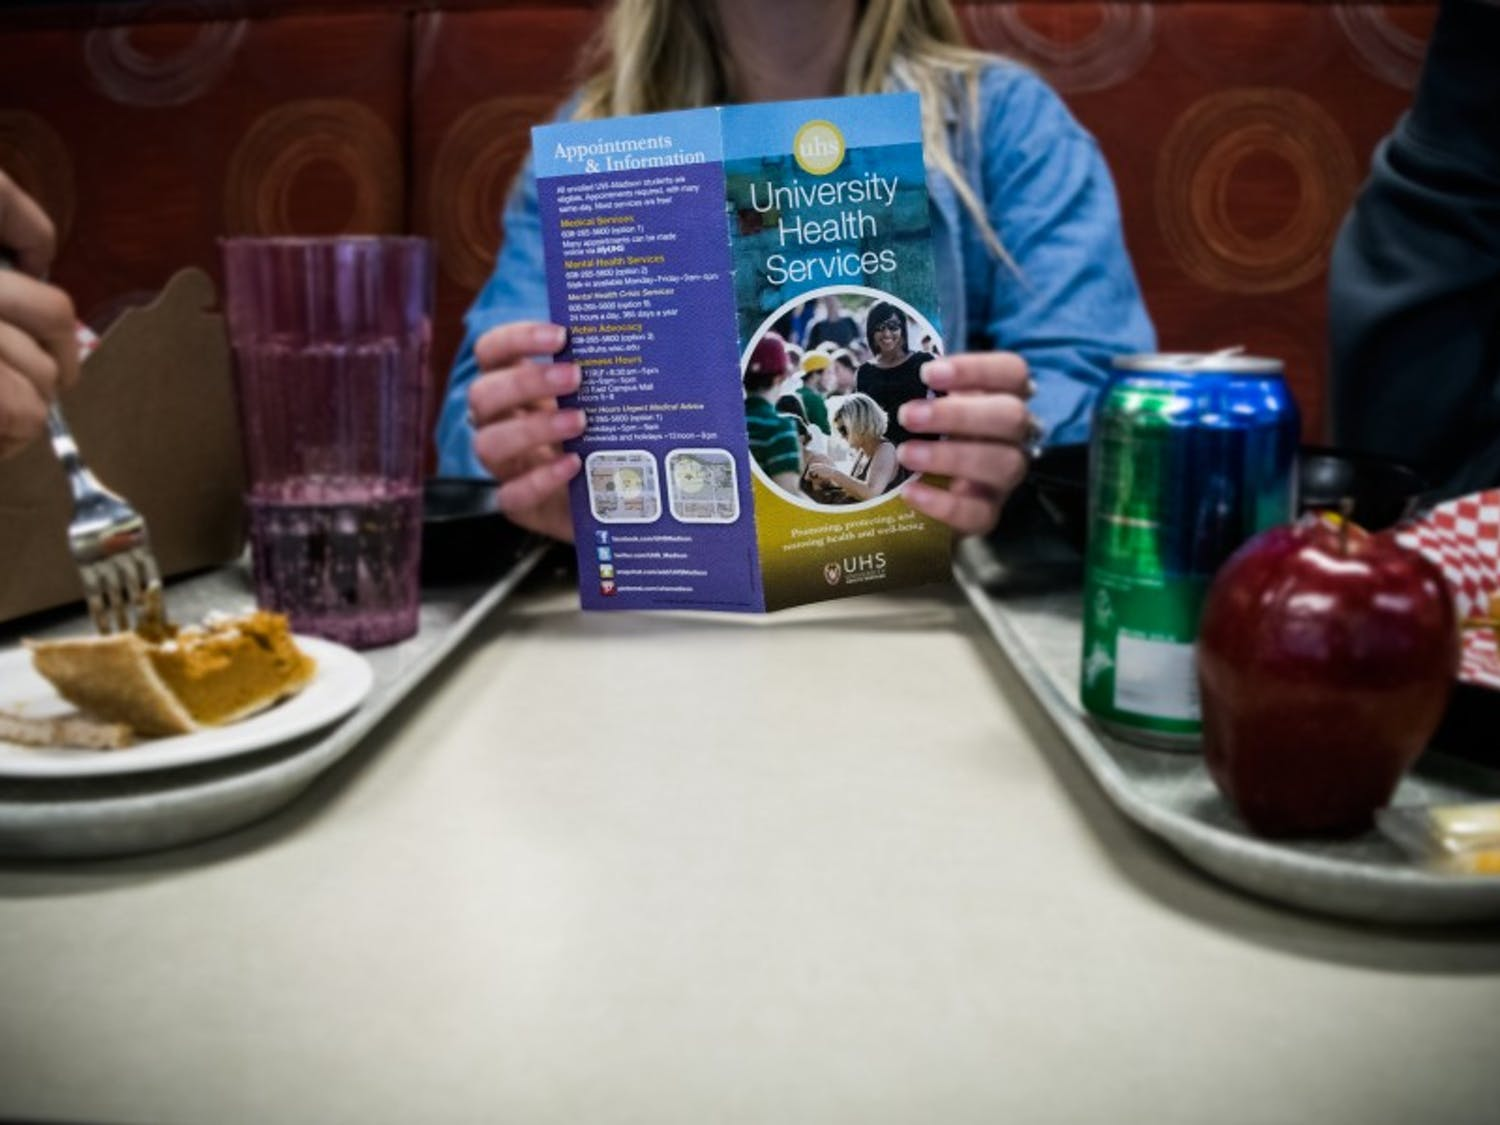 At UW-Madison, 19.7 percent of students screened positive for an eating disorder.